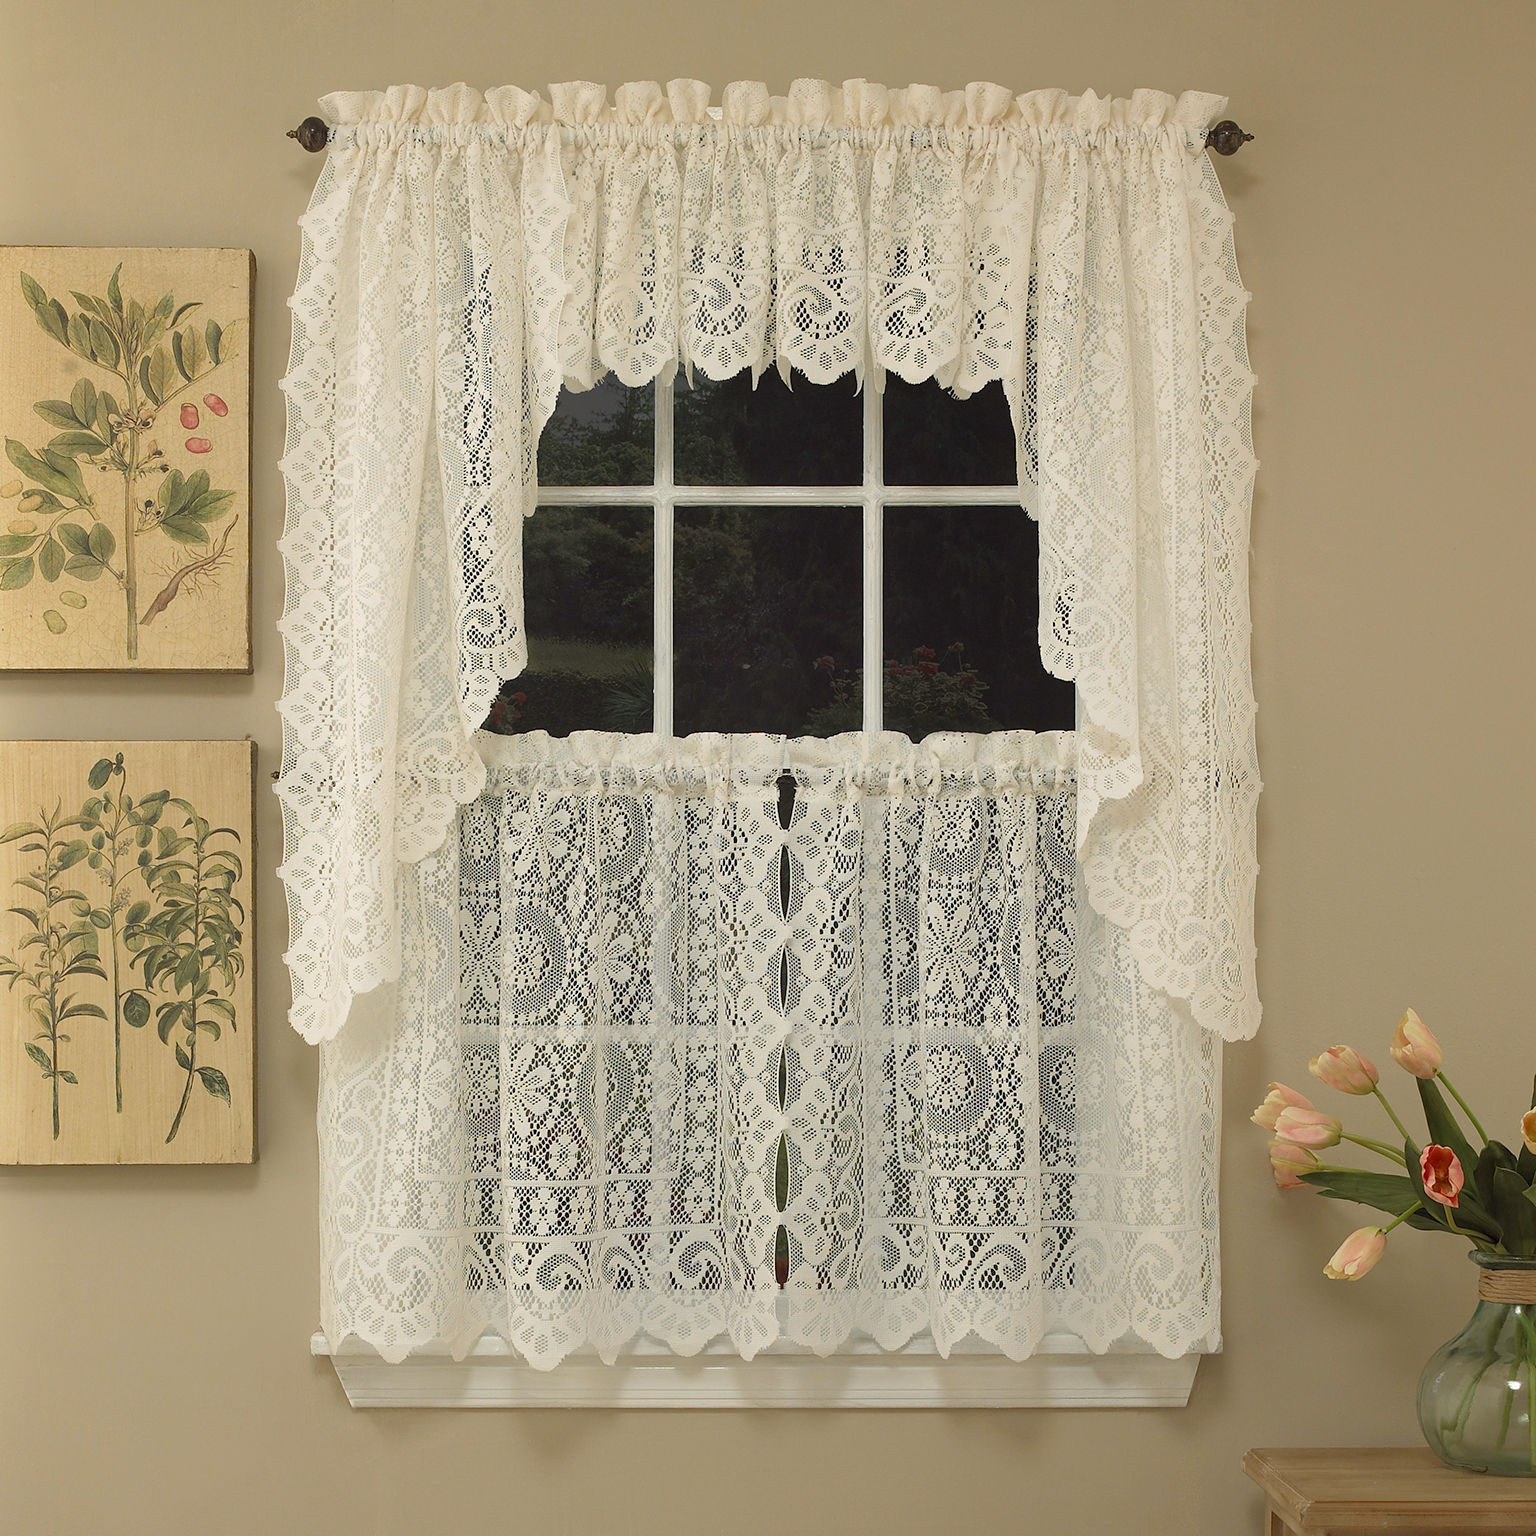 Fashionable Hopewell Heavy Cream Lace Kitchen Curtain Choice Of Tier Valance Or Swag Pertaining To Luxurious Old World Style Lace Window Curtain Panels (View 18 of 20)